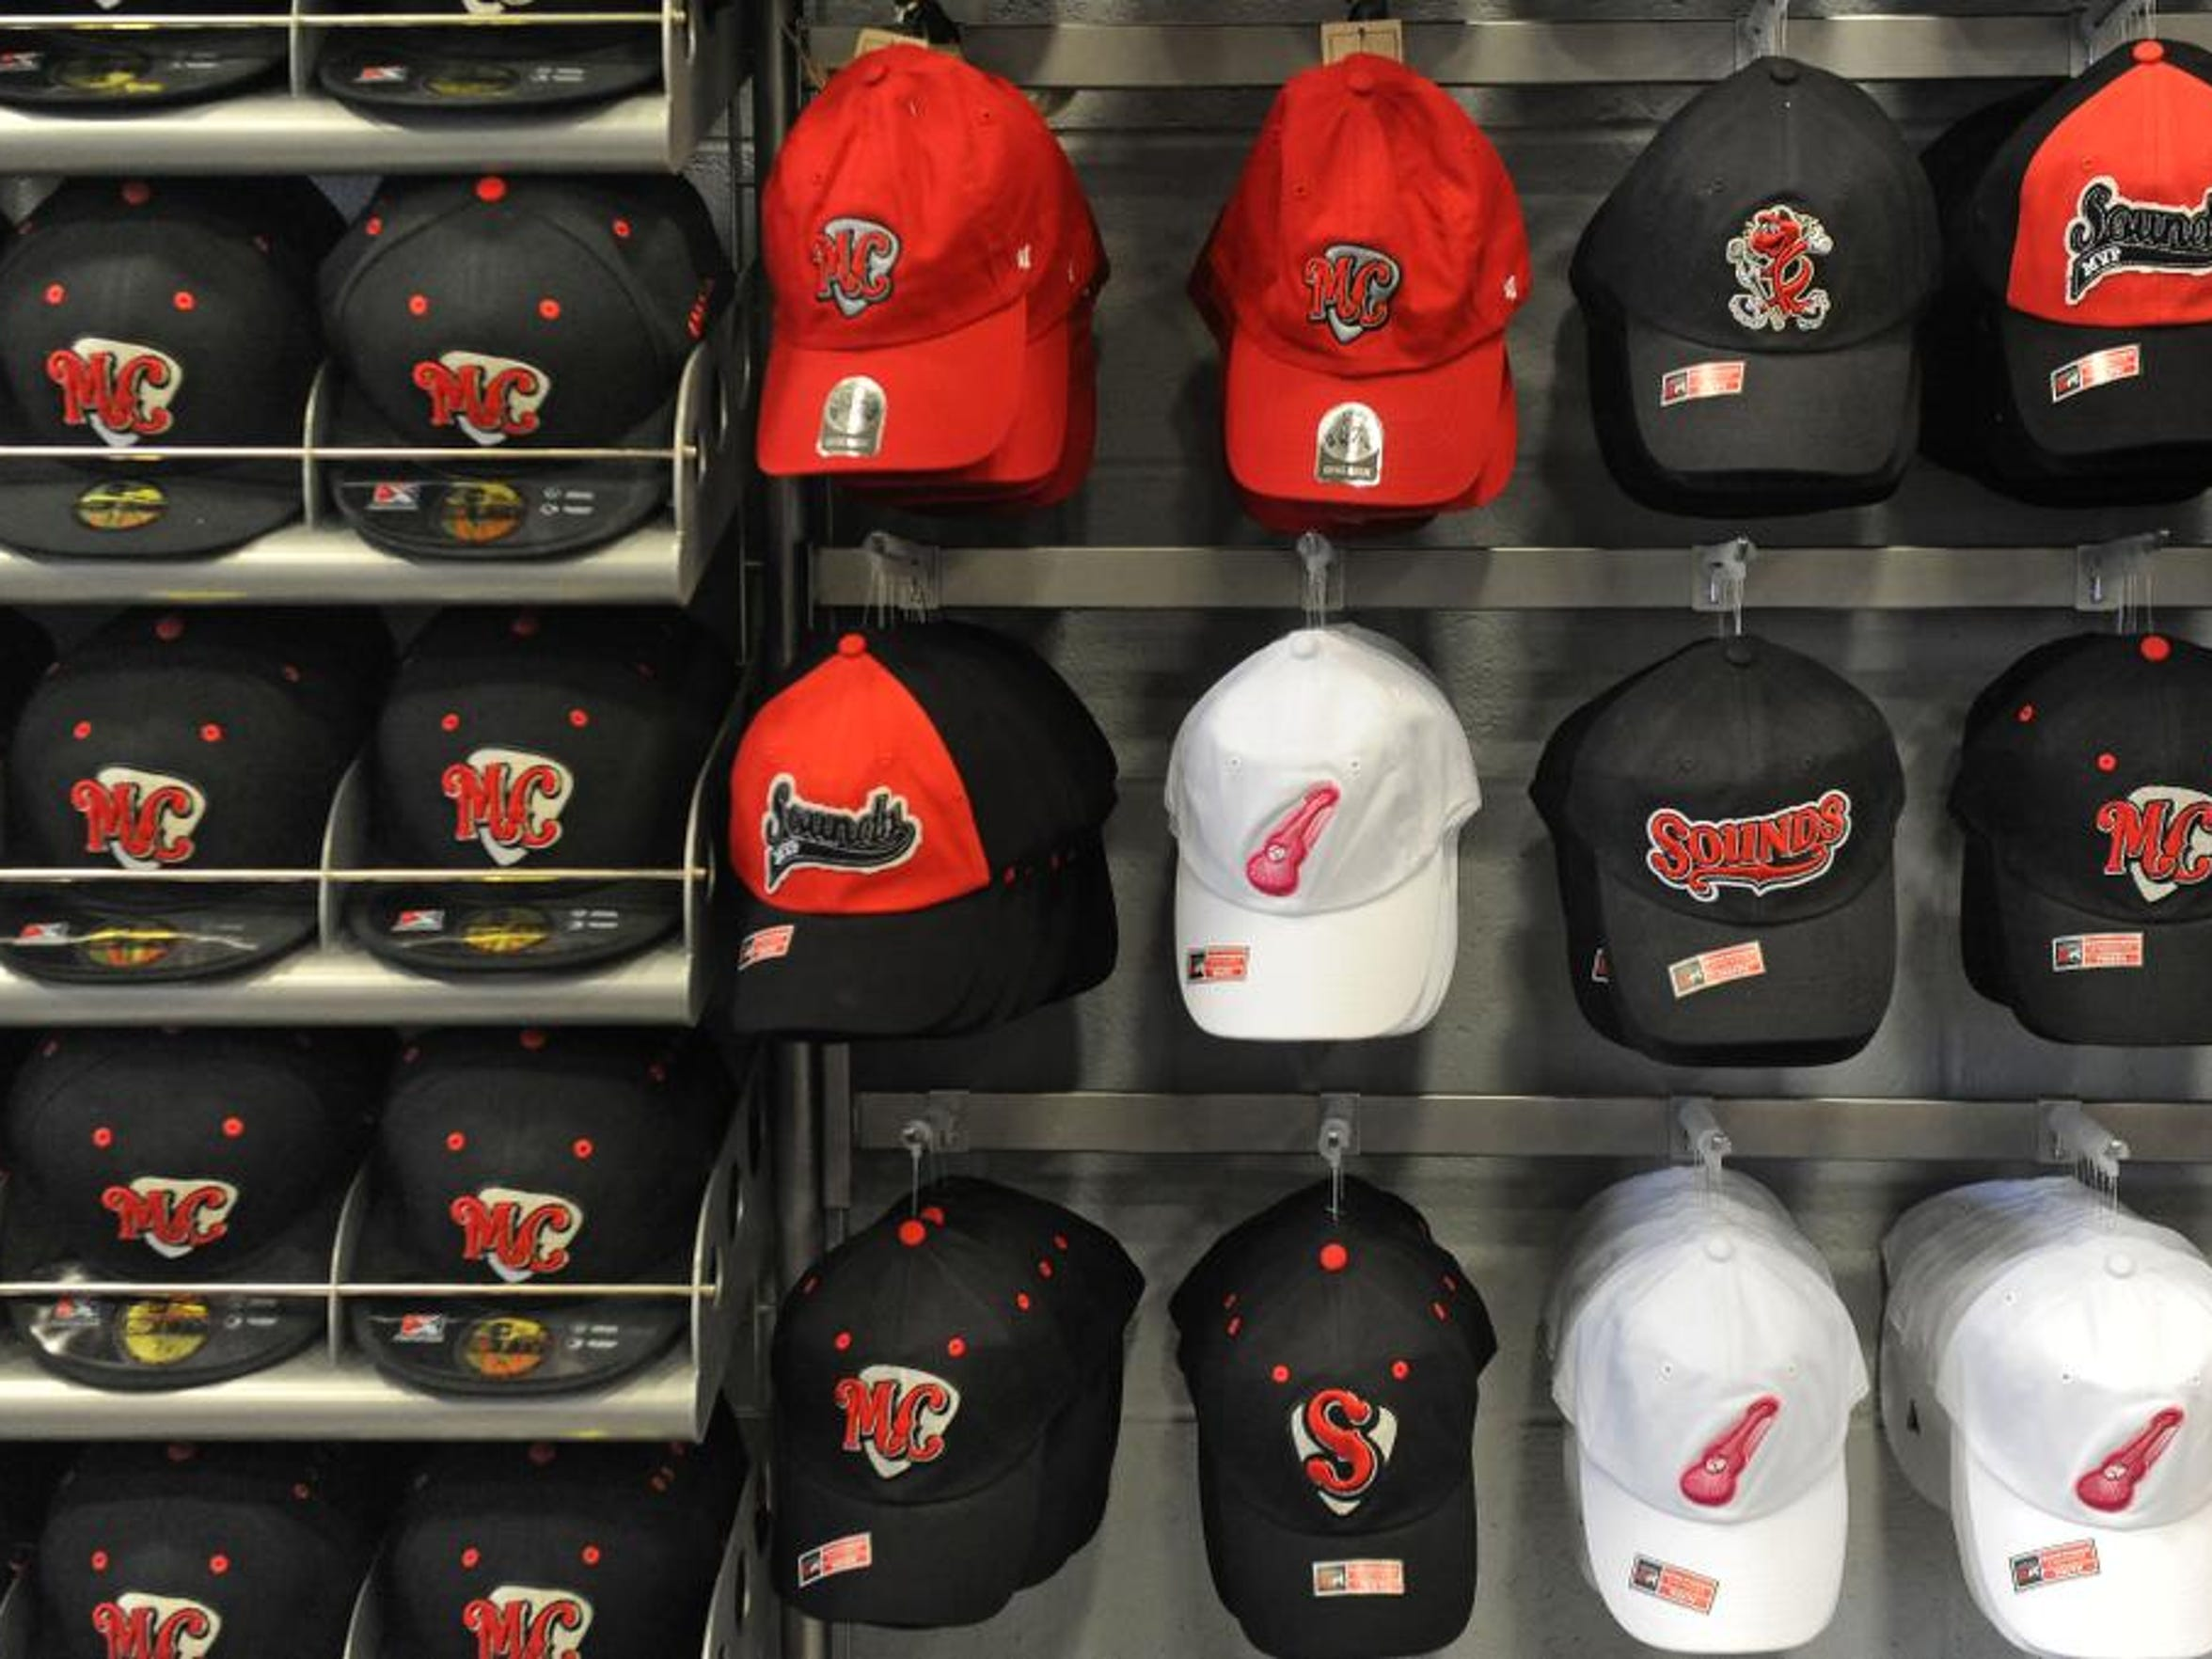 A look at the merchandise available for sale at the new ball park.